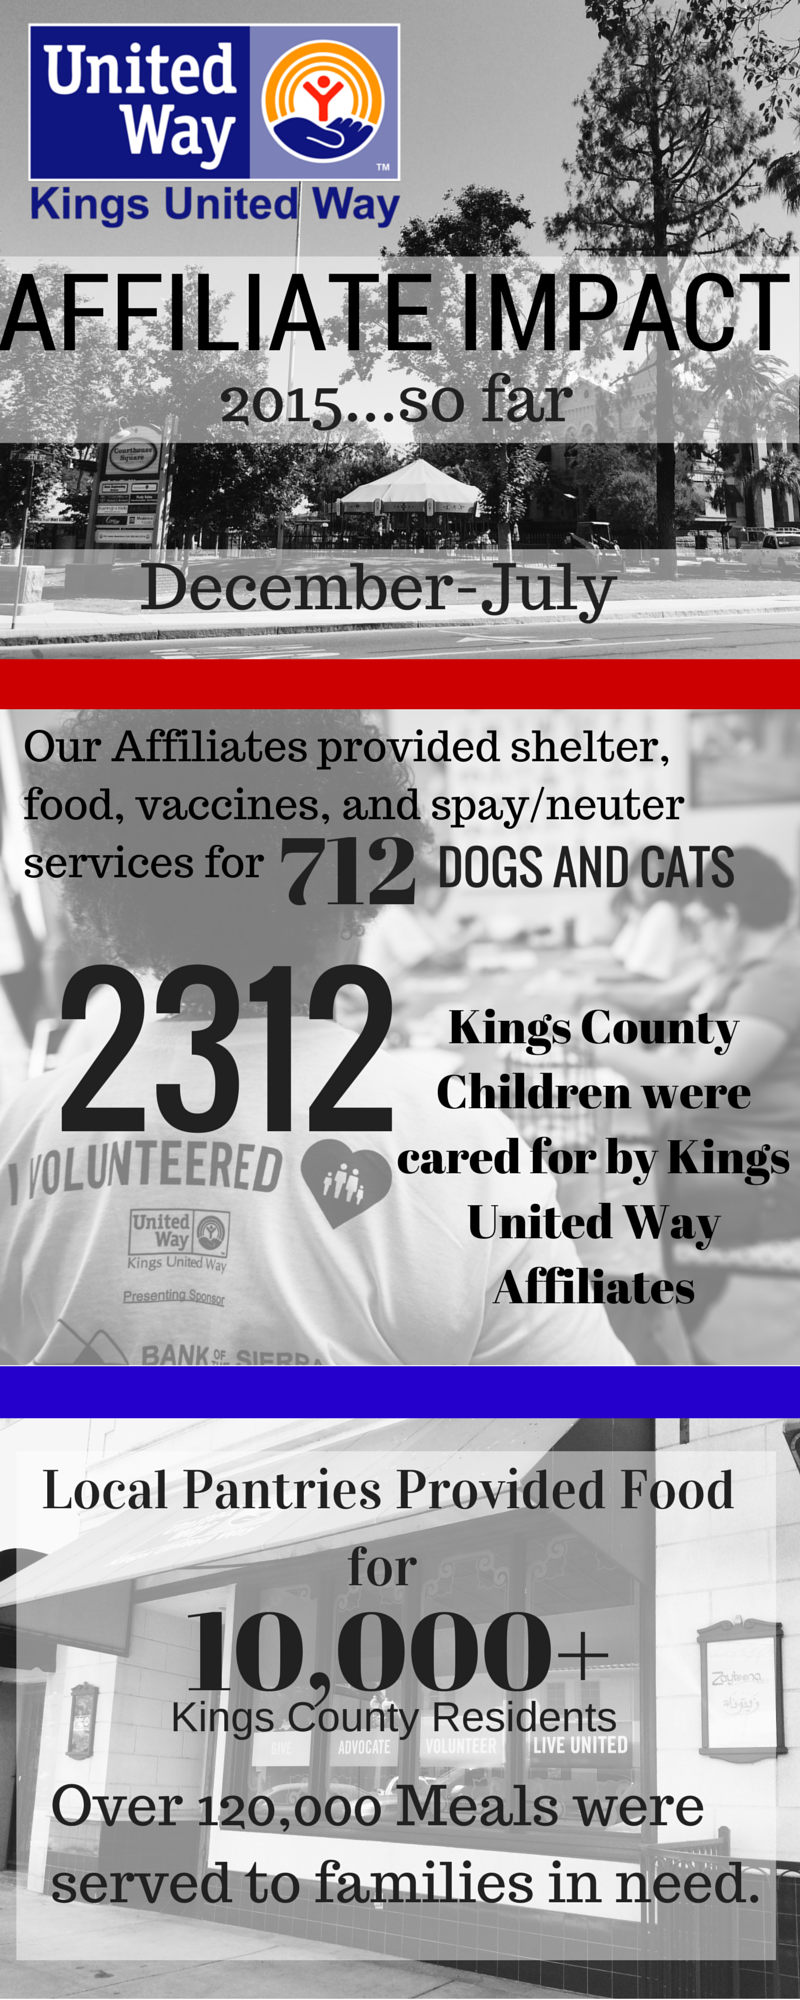 Kings United Way Affiliates Make A Difference!